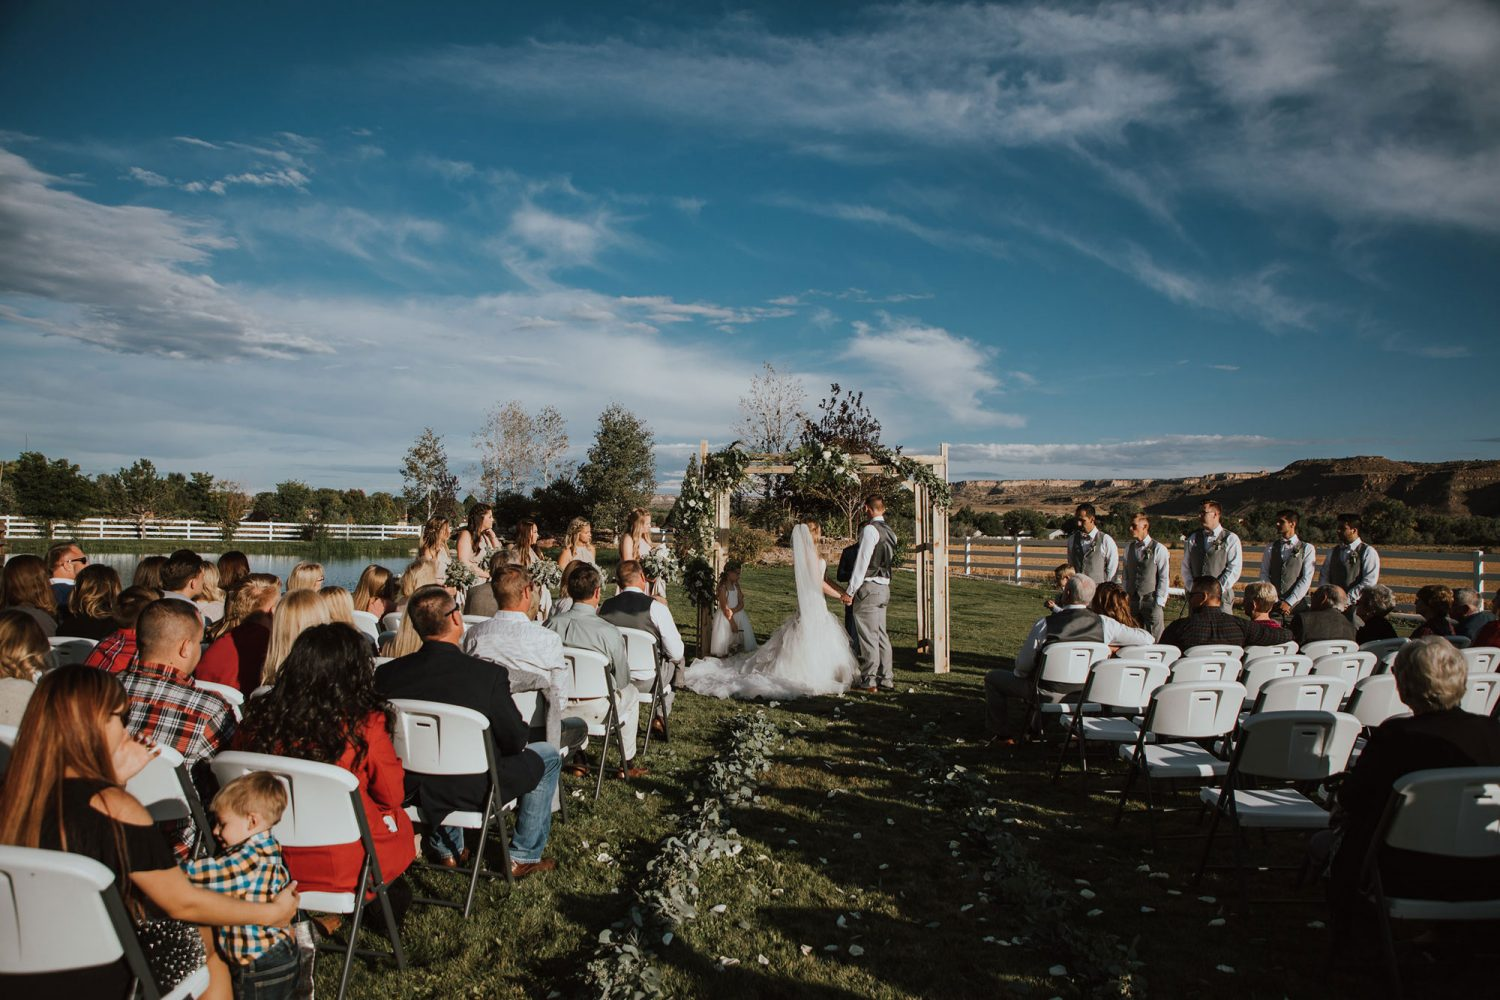 Outdoor ceremony from a Rustic Glam Wedding at Triple J Ranch in Kirtland, New Mexico